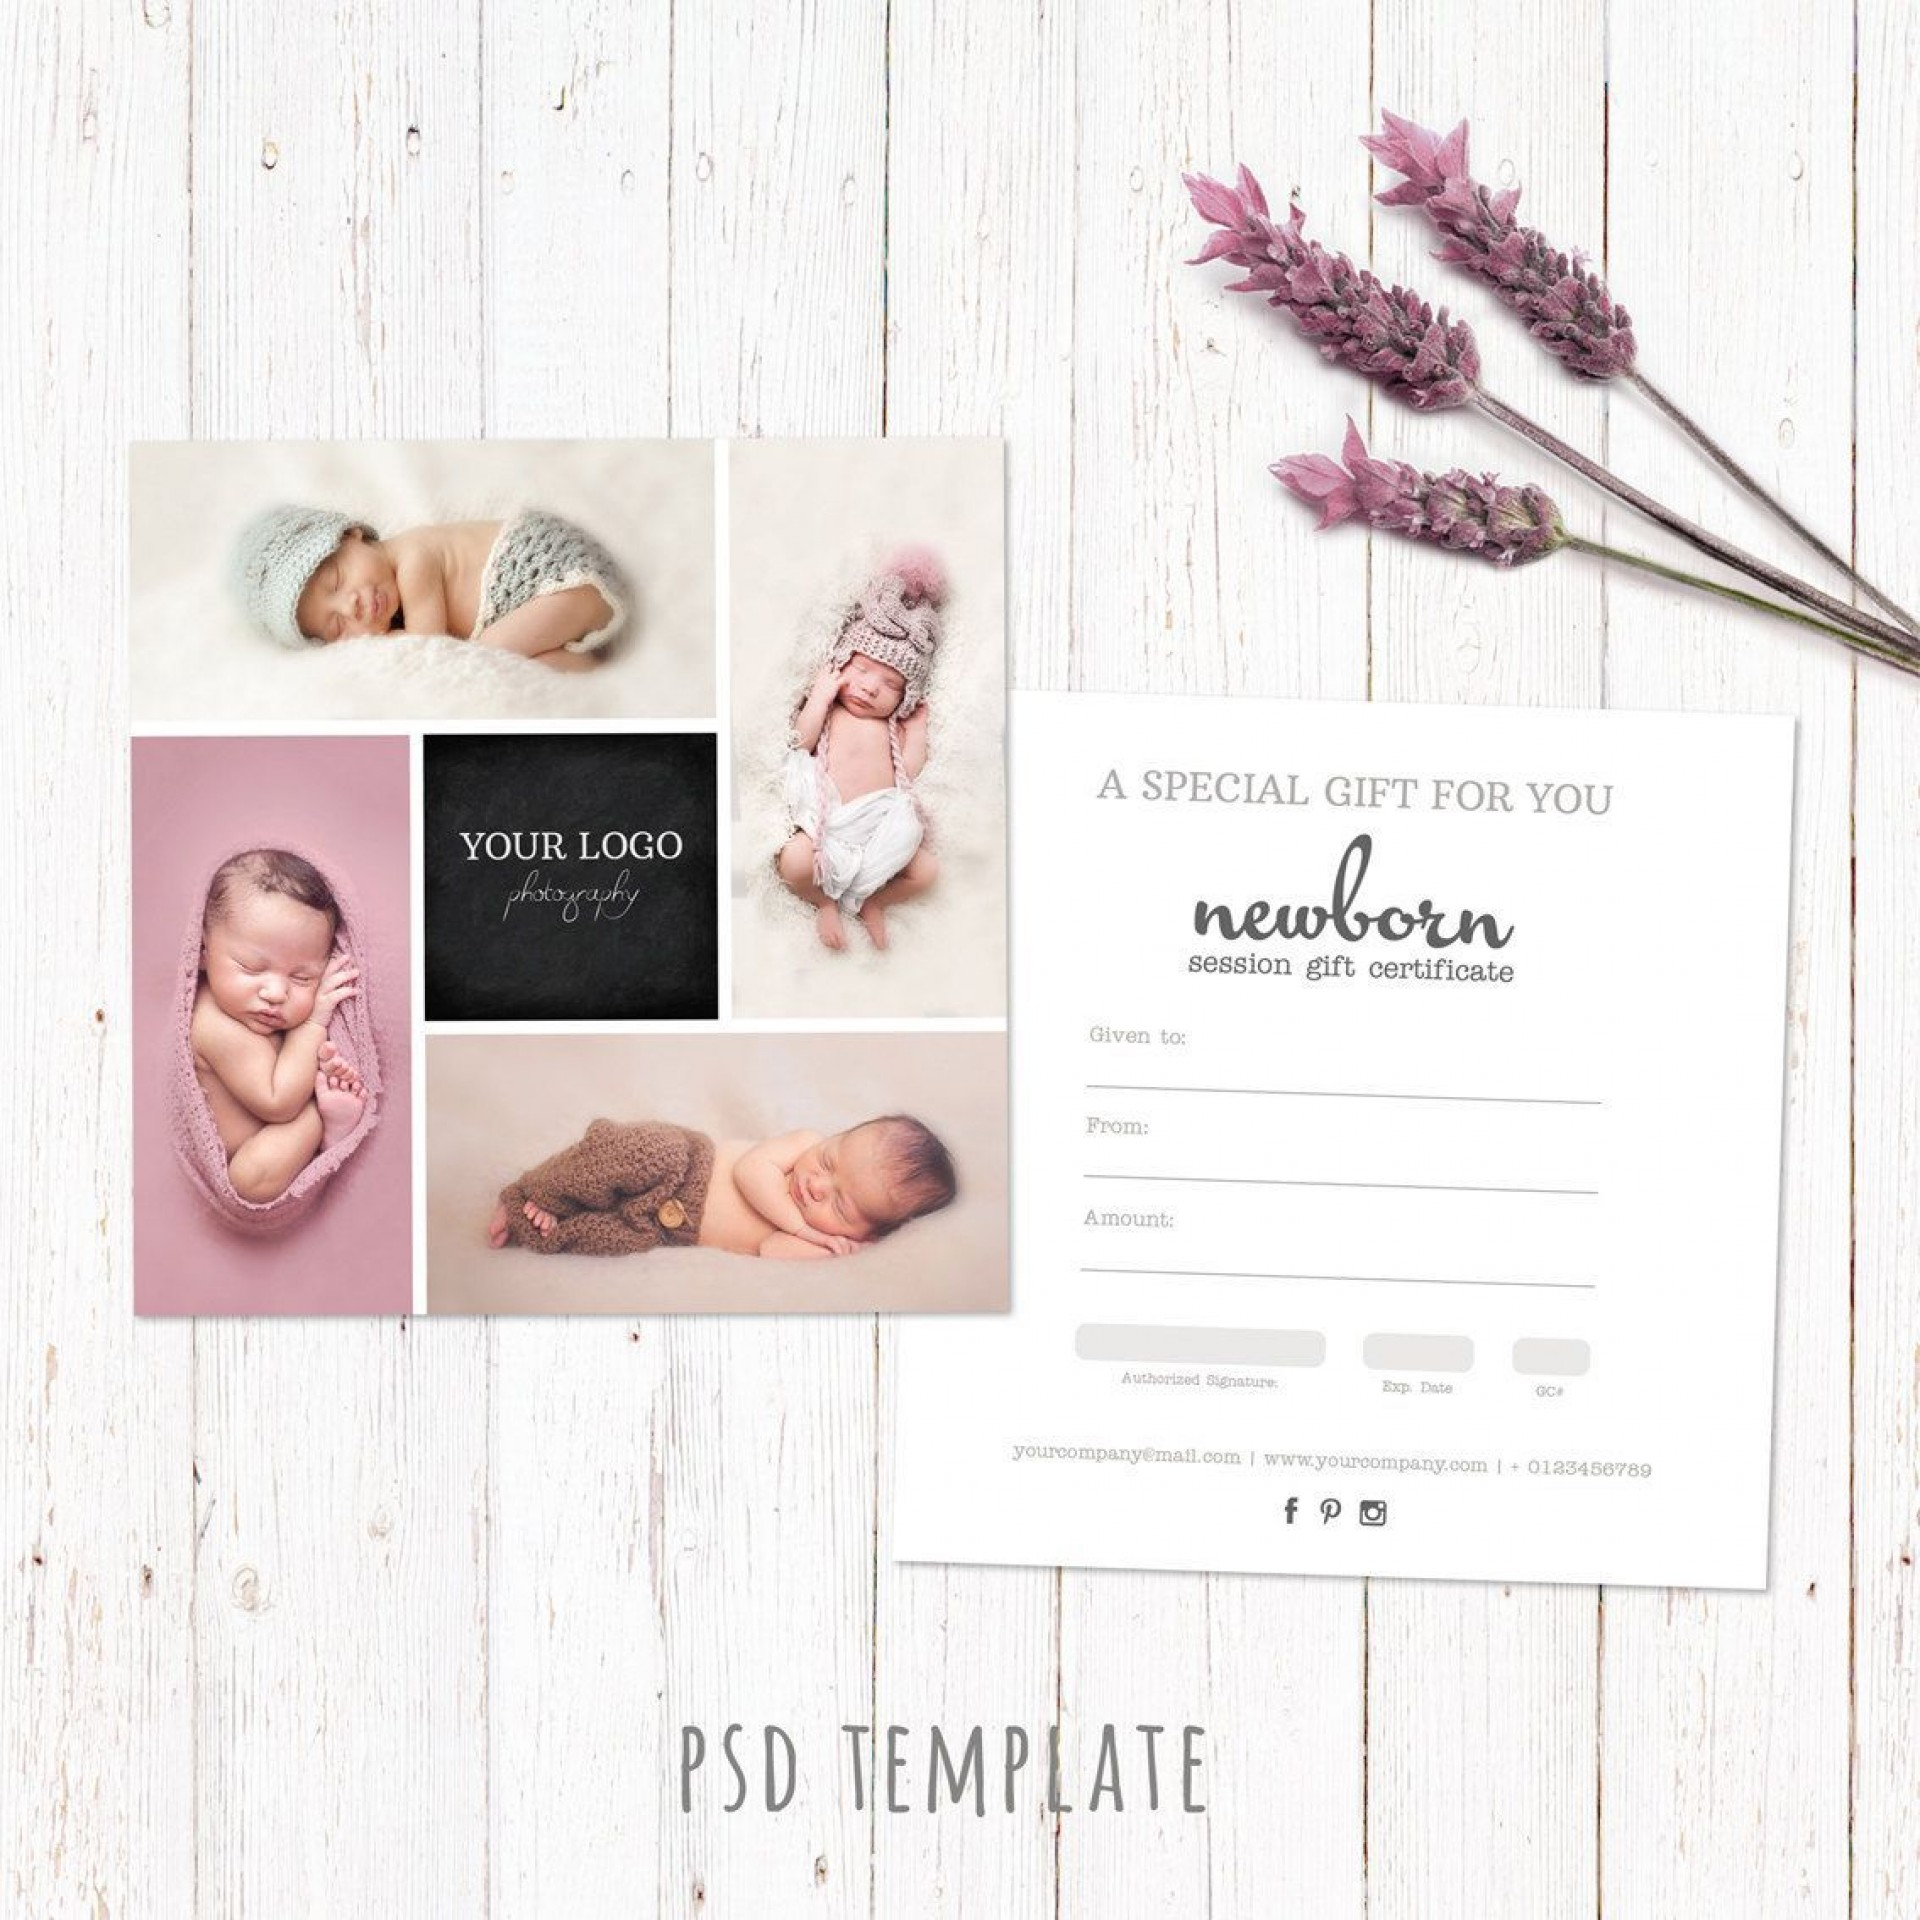 000 Awful Photography Session Gift Certificate Template Example  Photo Free Photoshoot1920